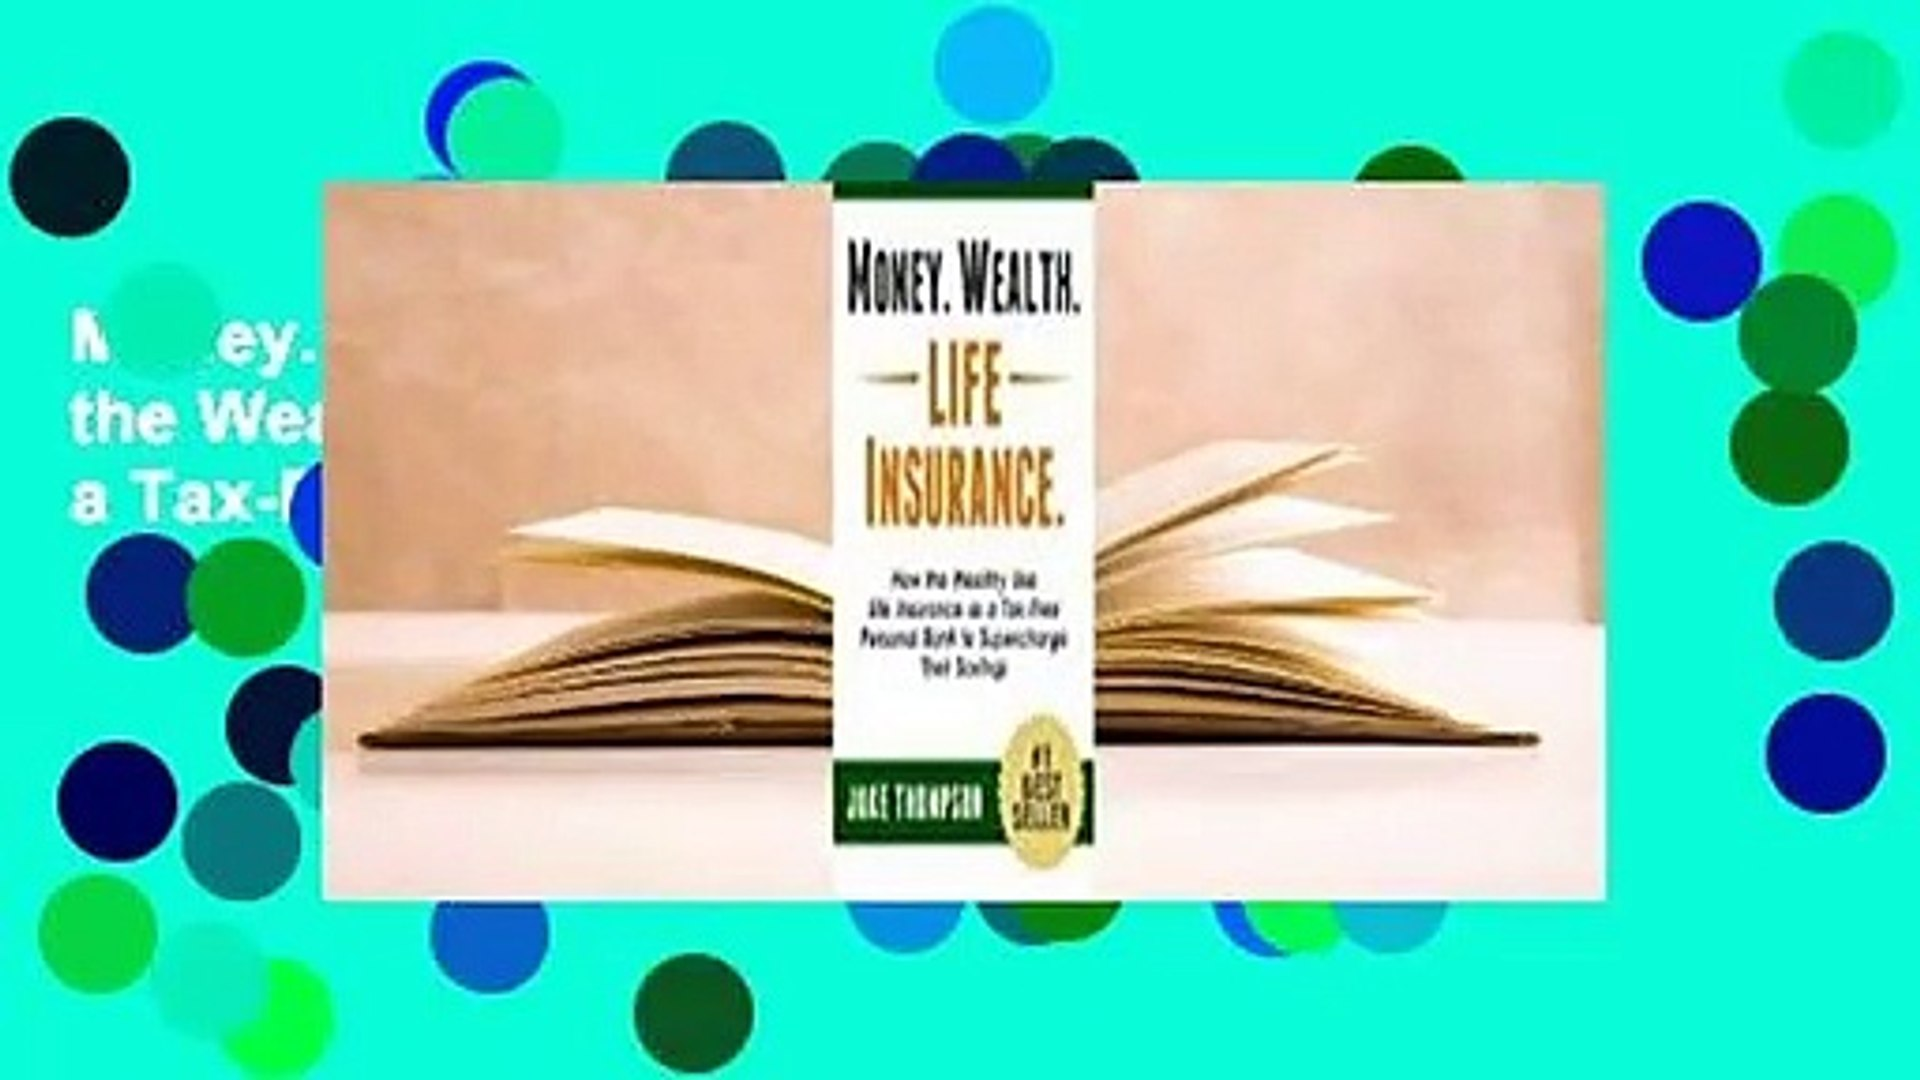 Money. Wealth. Life Insurance.: How the Wealthy Use Life Insurance as a Tax-Free Personal Bank to